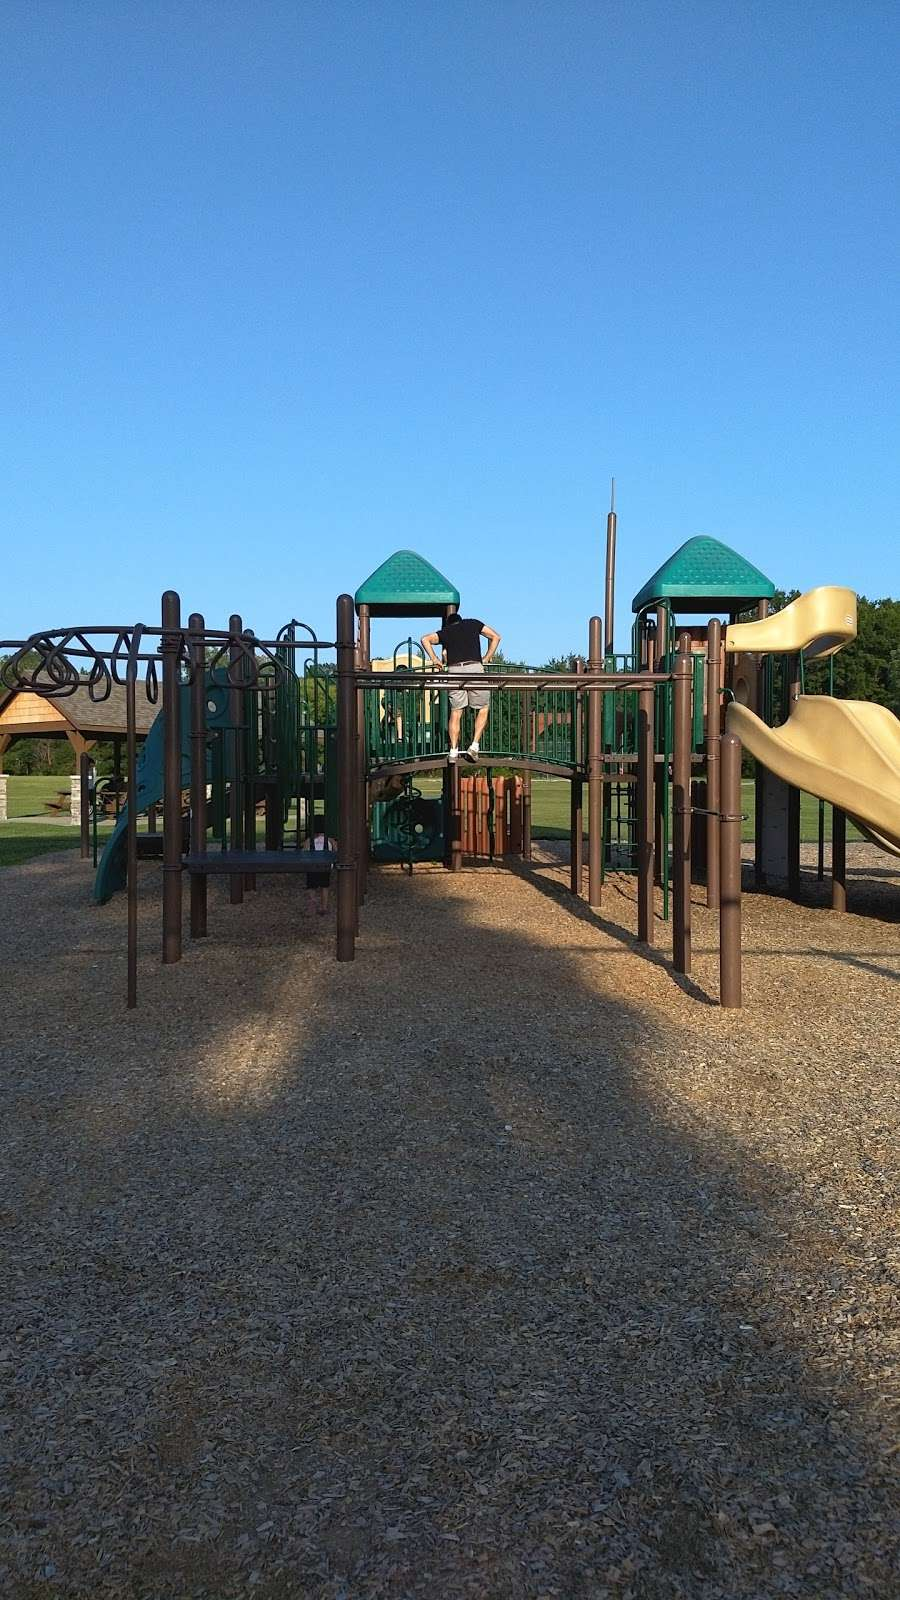 Countryside Park - park  | Photo 10 of 10 | Address: 5250 US-6, Portage, IN 46368, USA | Phone: (219) 762-1675